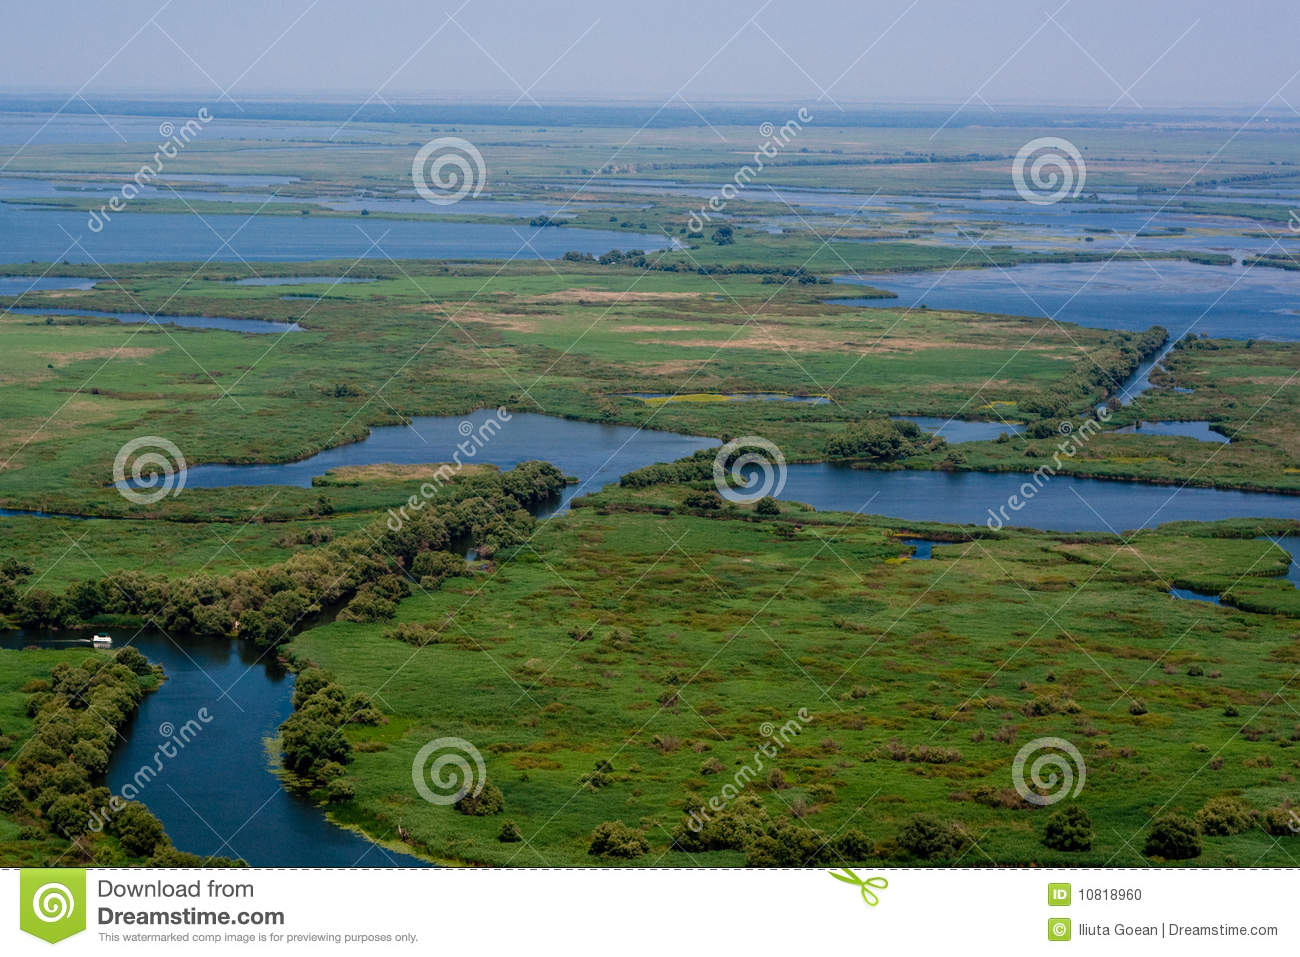 Aerial View of Danube Delta